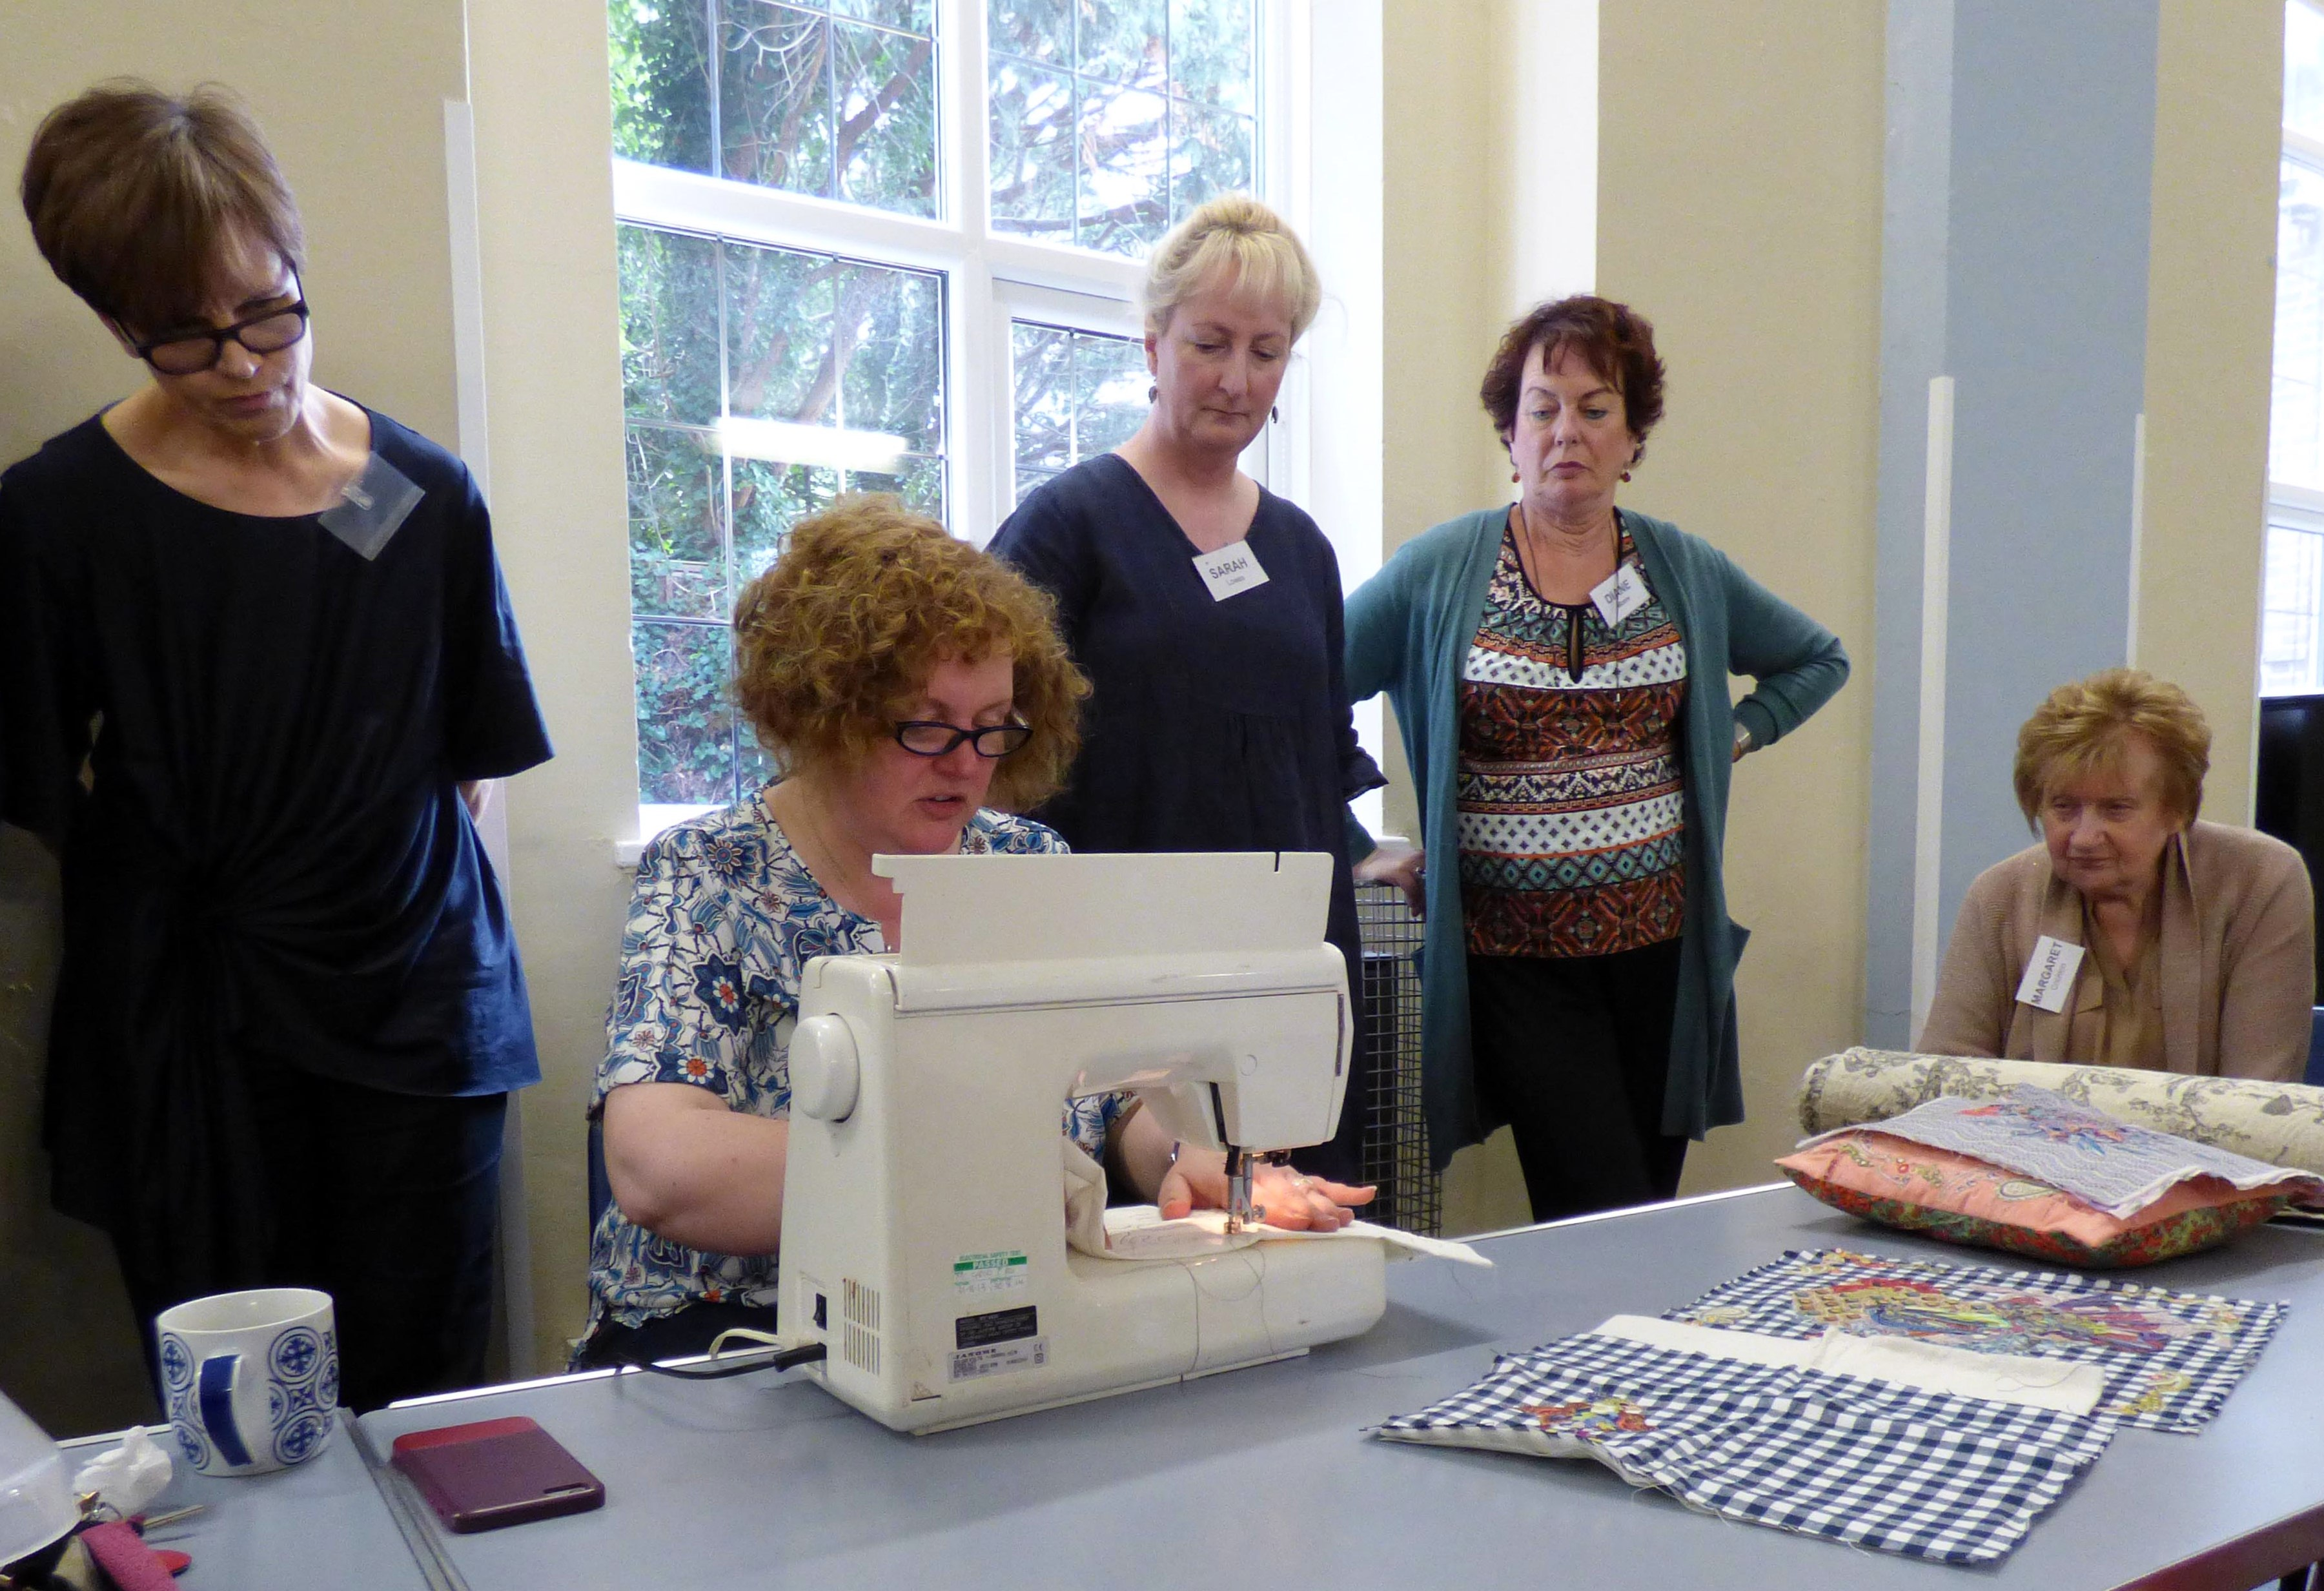 Lizzie Wall demonstrating free machine embroidery at Raw Edge Applique workshop with Lizzie Wall